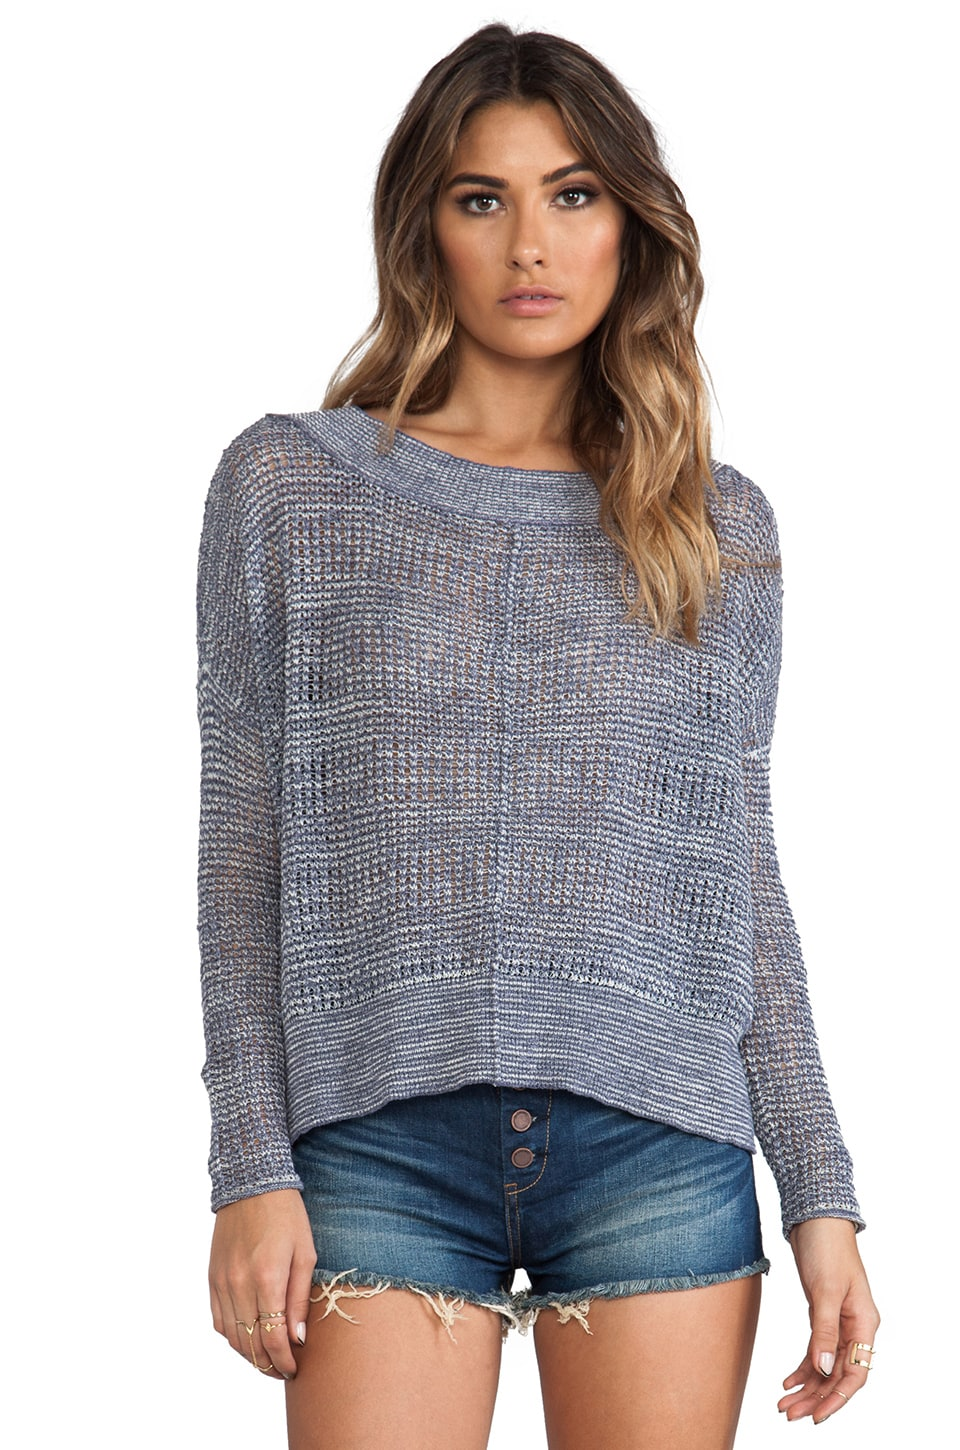 Free People These Days Fine Gauge Pullover in Denim Combo